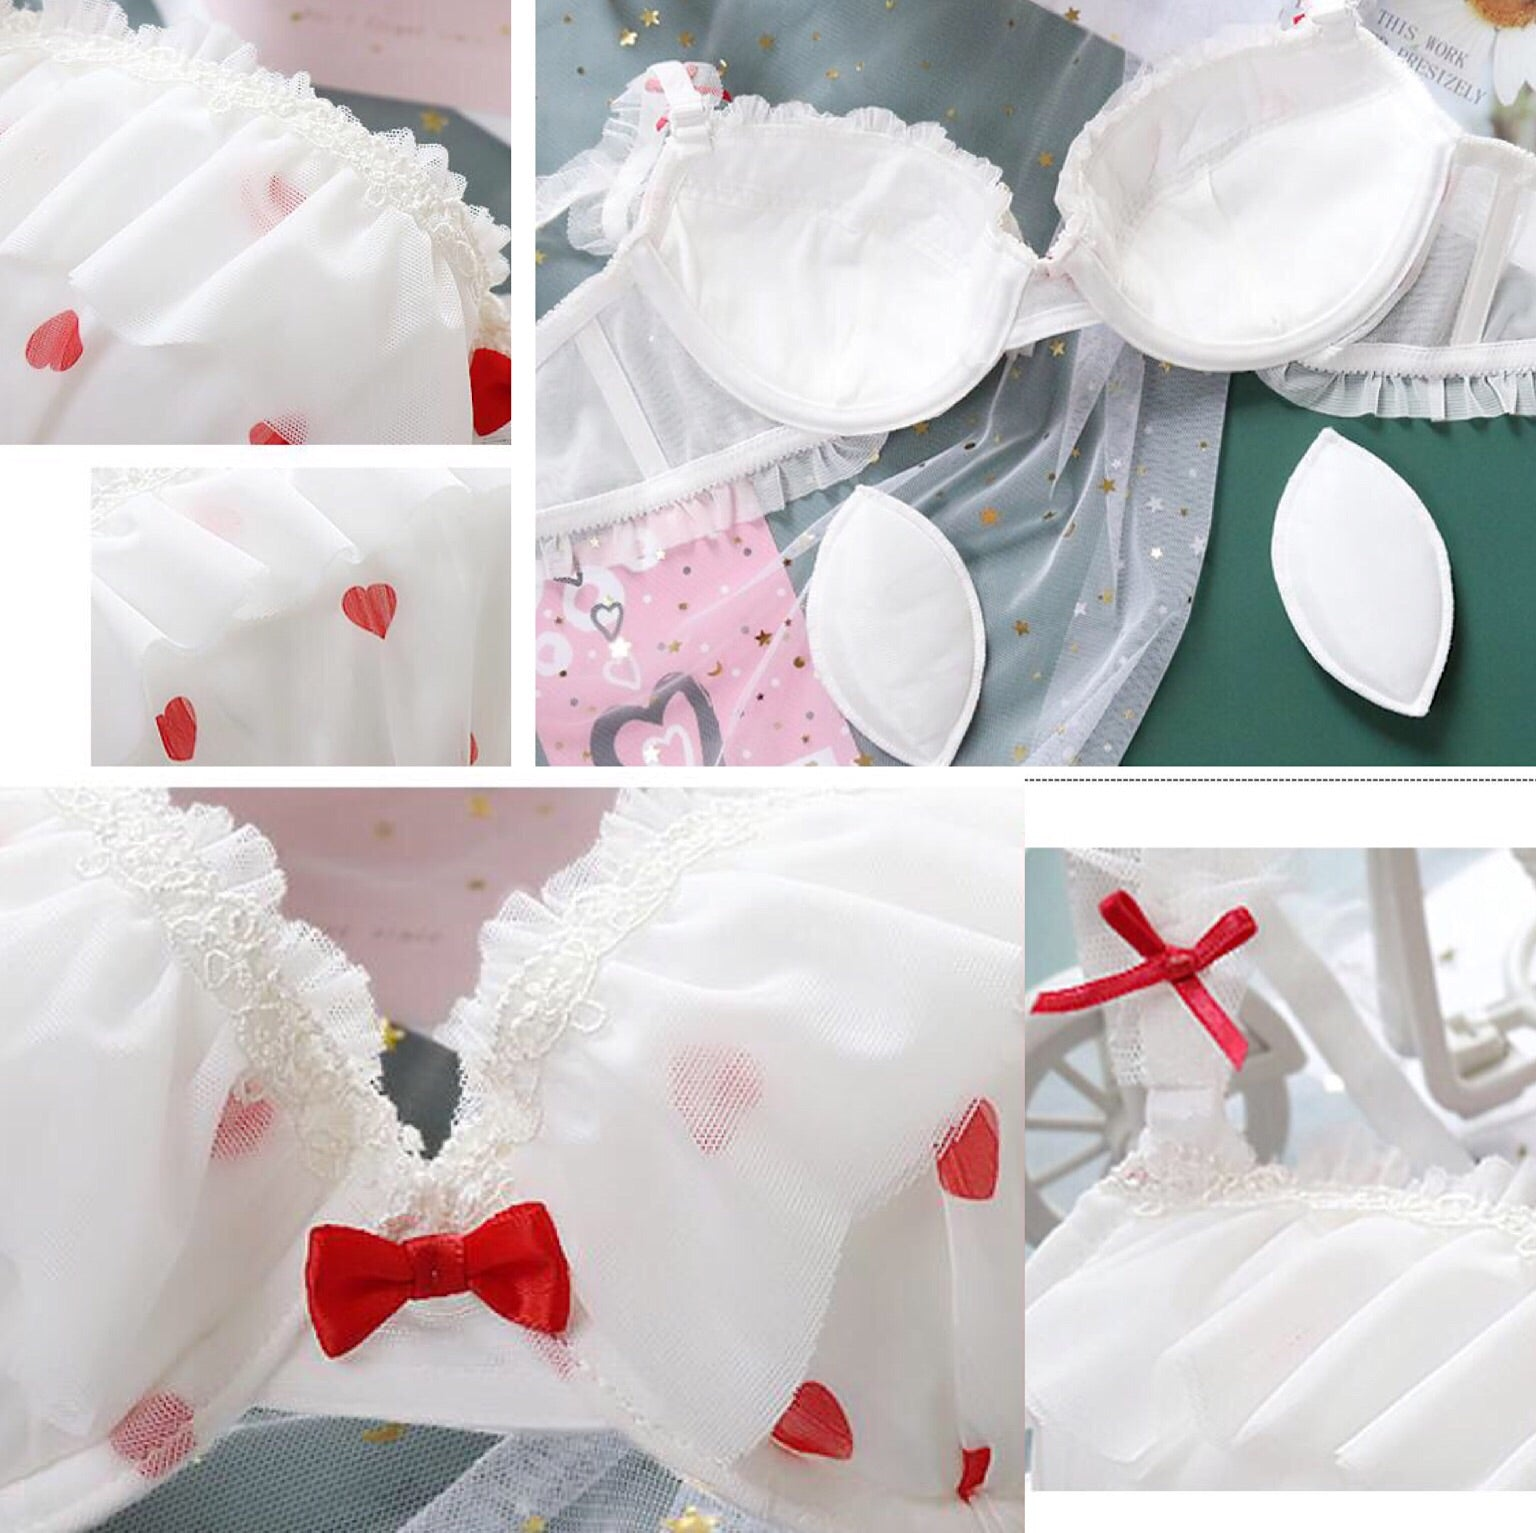 Nymphette Heart Ruffle 2-piece Kawaii Princess Lolita Nymphet Lingerie Set